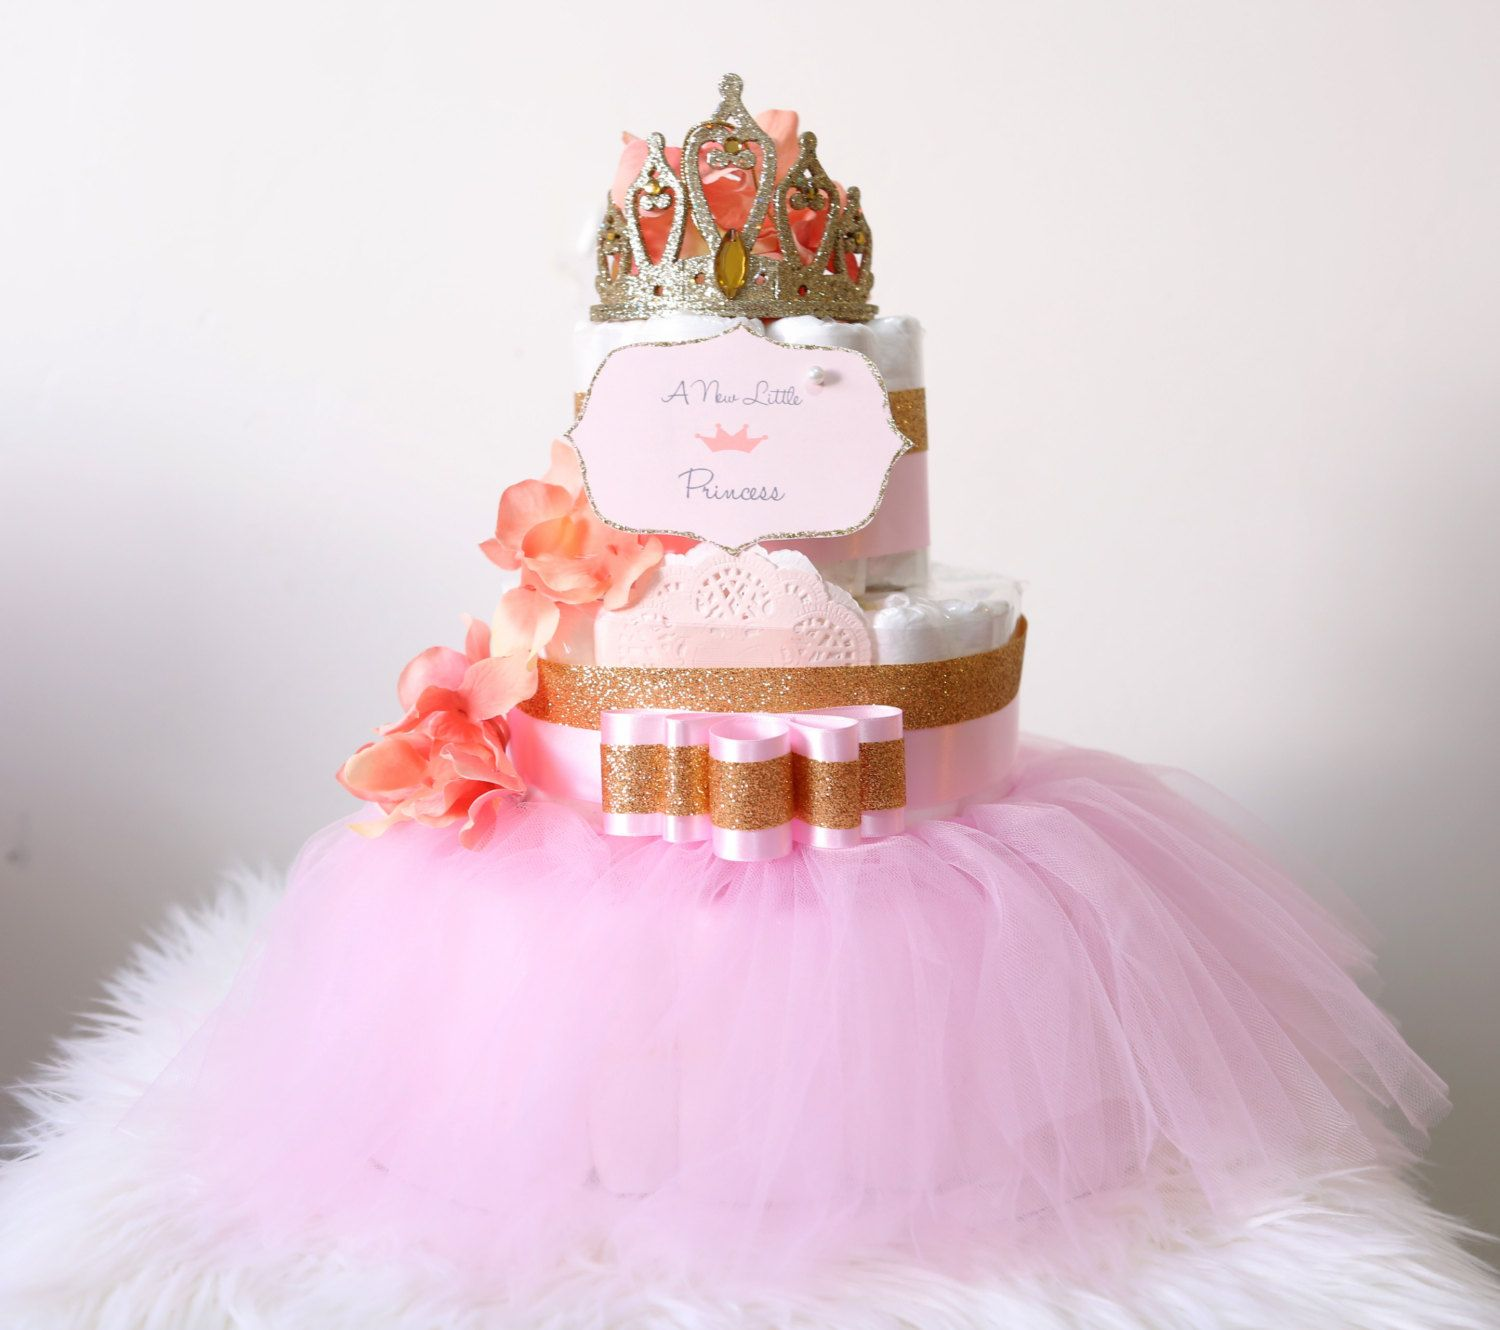 Gold Amp Pink Diaper Cake With Crown Tiara For Baby Girl